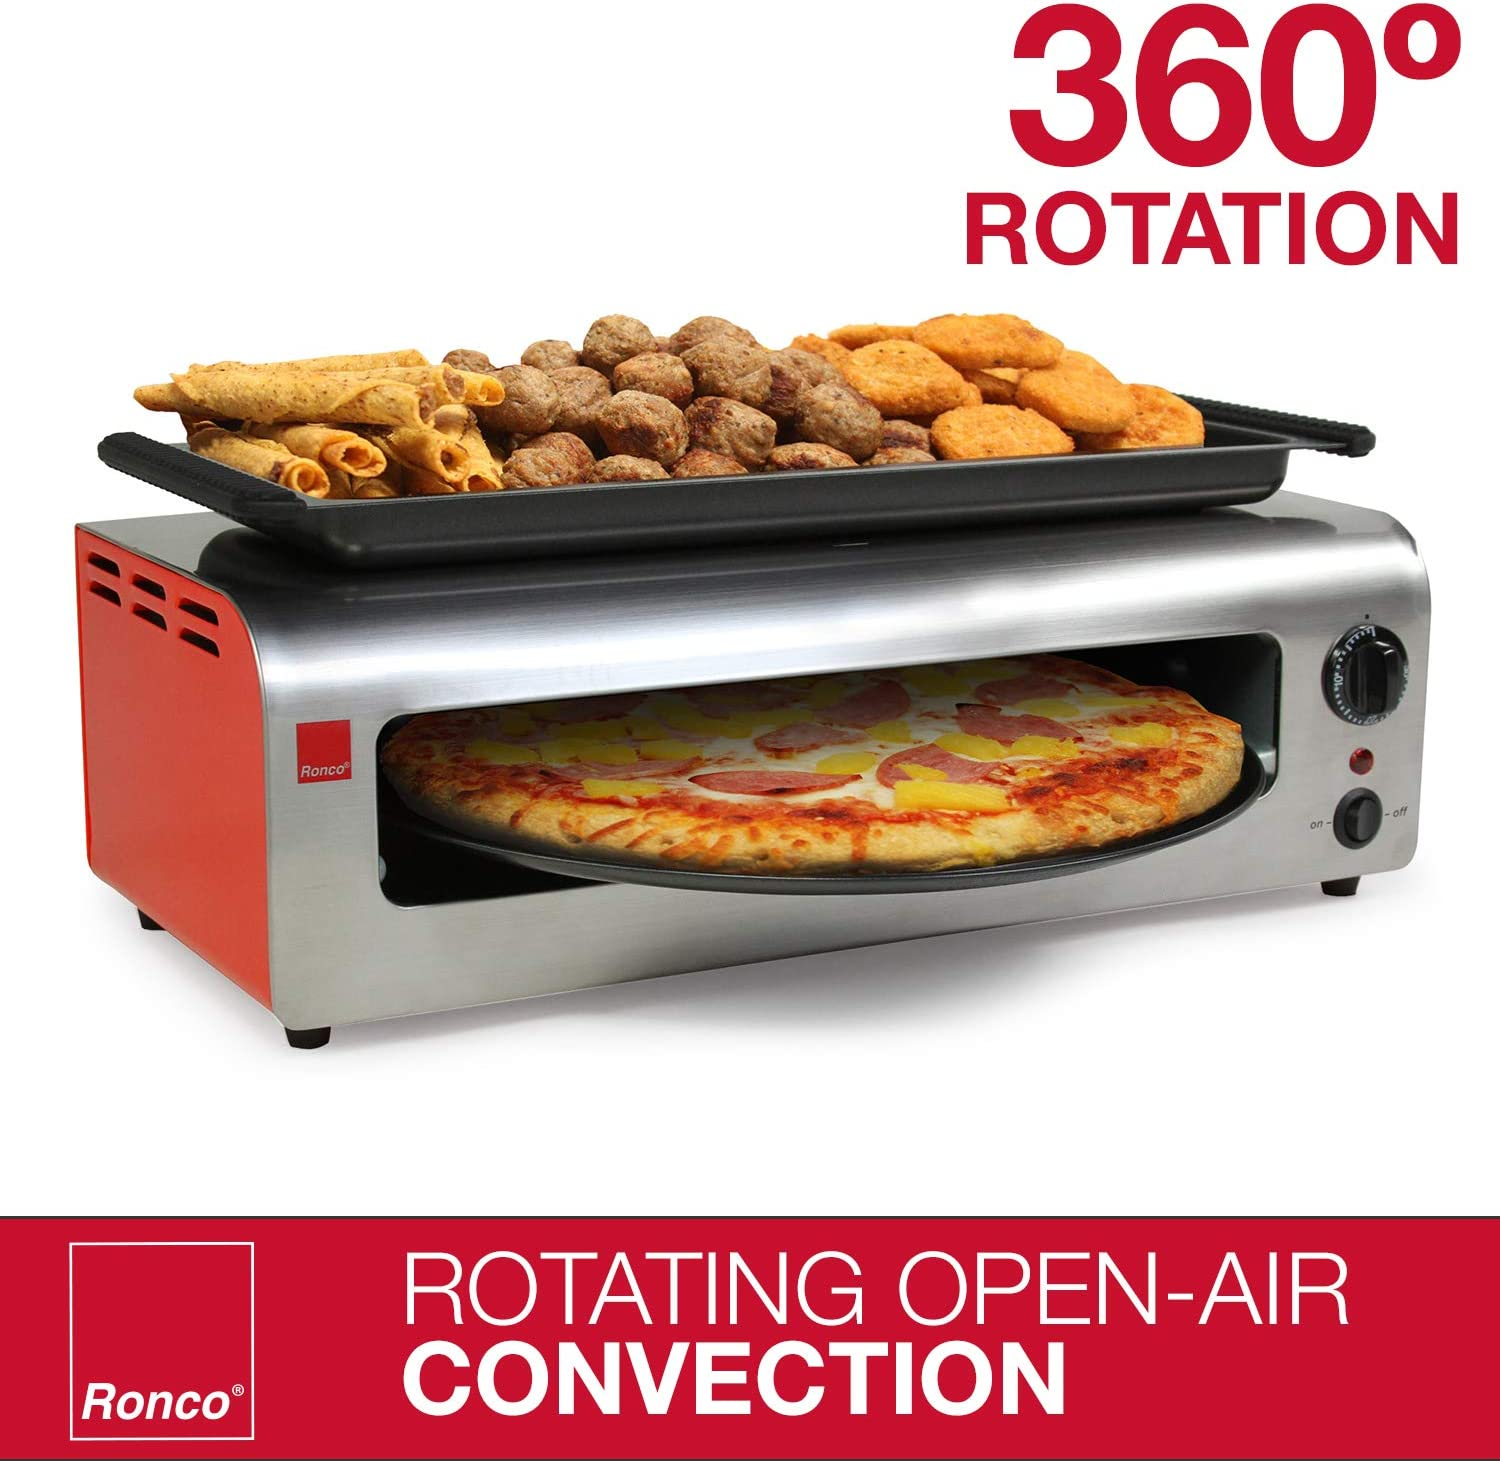 Cooks 40/% Faster Ronco Pizza and More Dishwasher Safe Accessories Party Convection Oven Includes Warming Tray and Non-Stick Pan Pizza Oven with Warming Tray Countertop Open-Air Convection Oven Red Stainless Automatic Shut-Off Timer